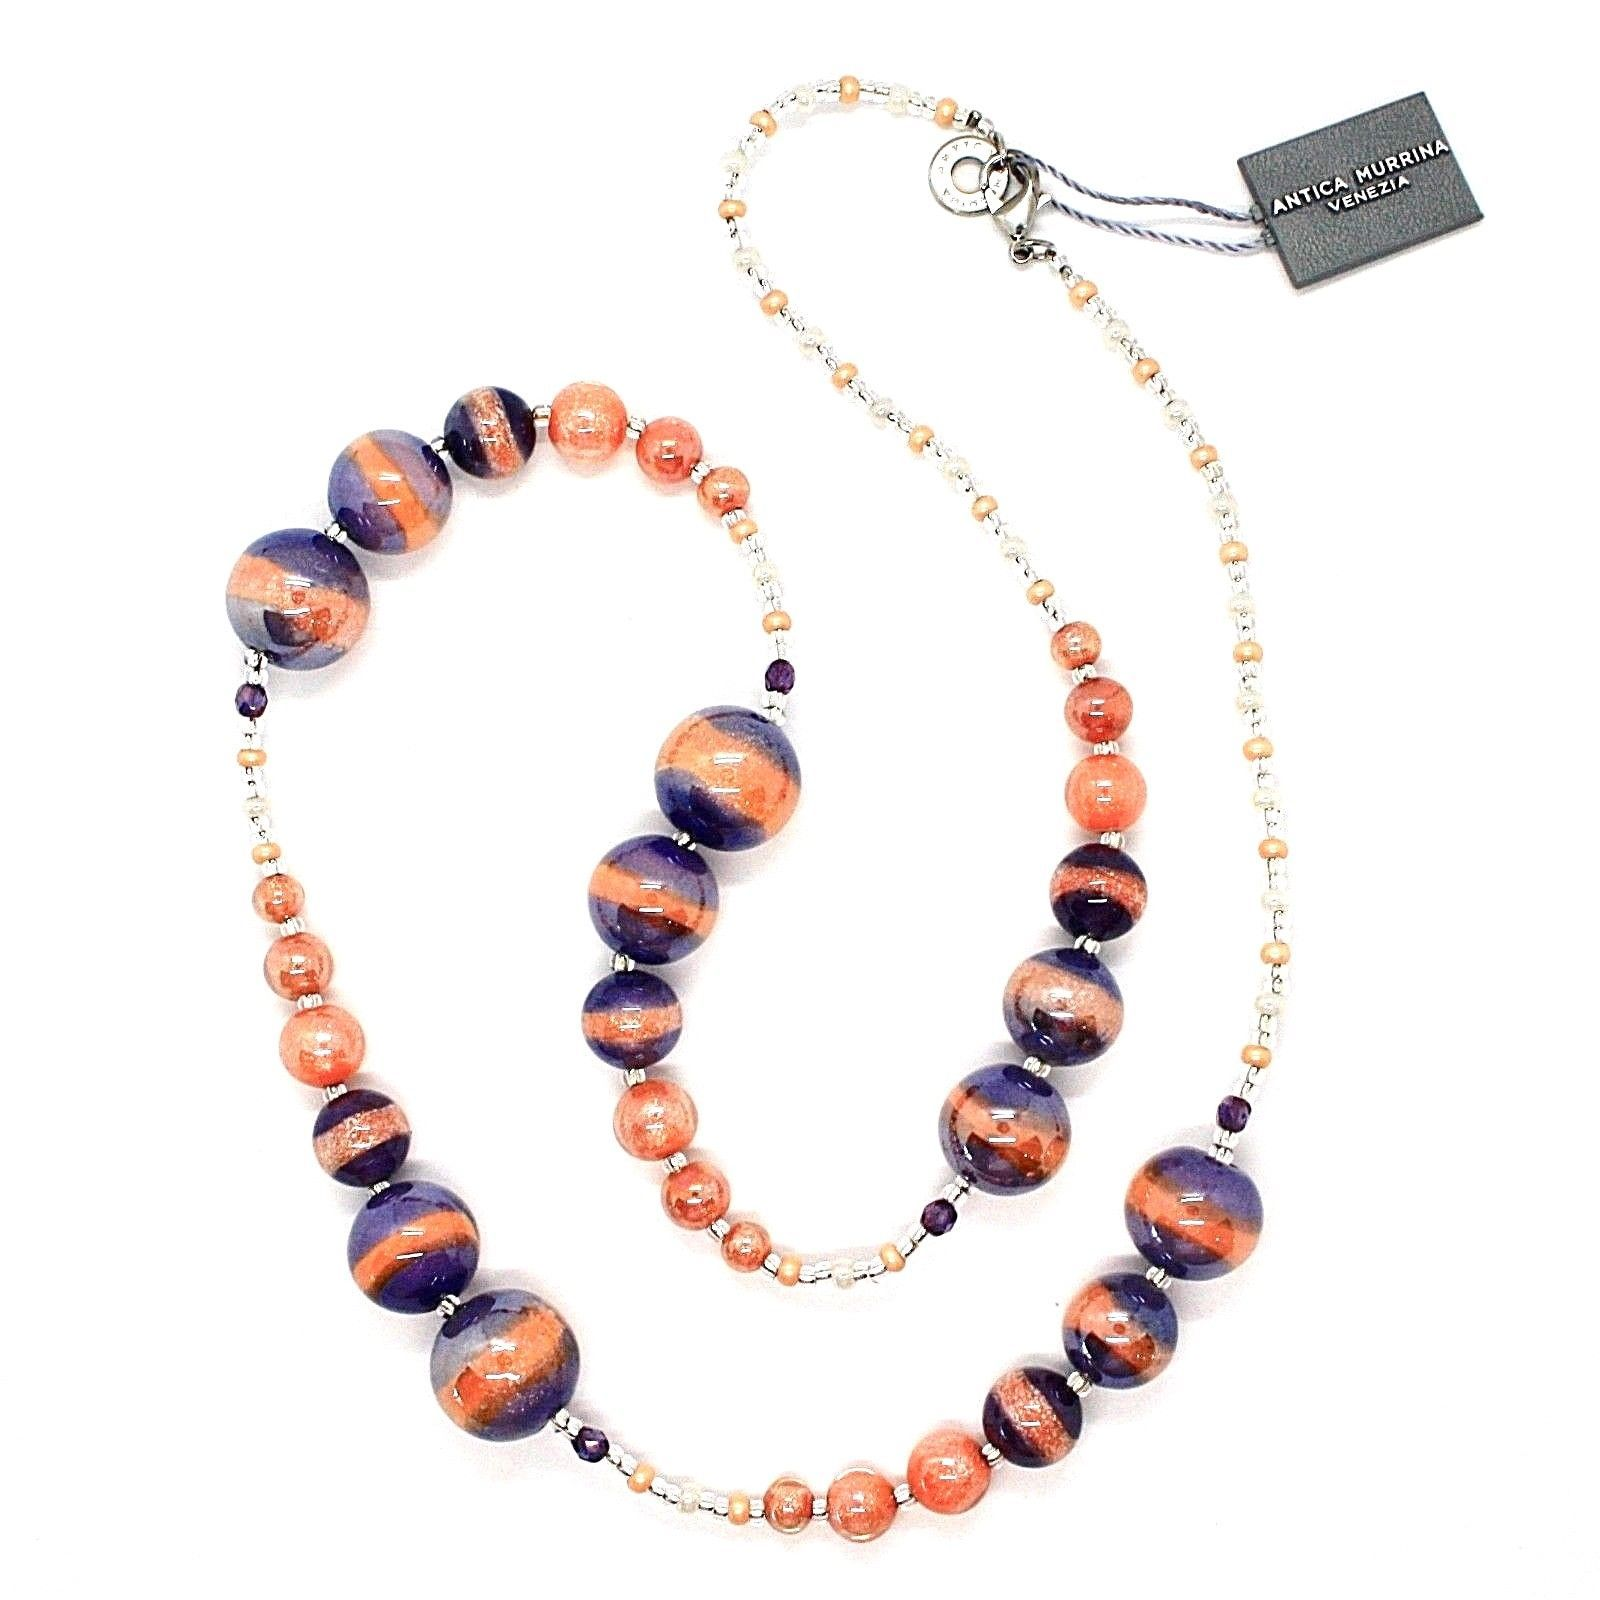 NECKLACE ANTICA MURRINA VENEZIA WITH MURANO GLASS ORANGE PURPLE CO933A25